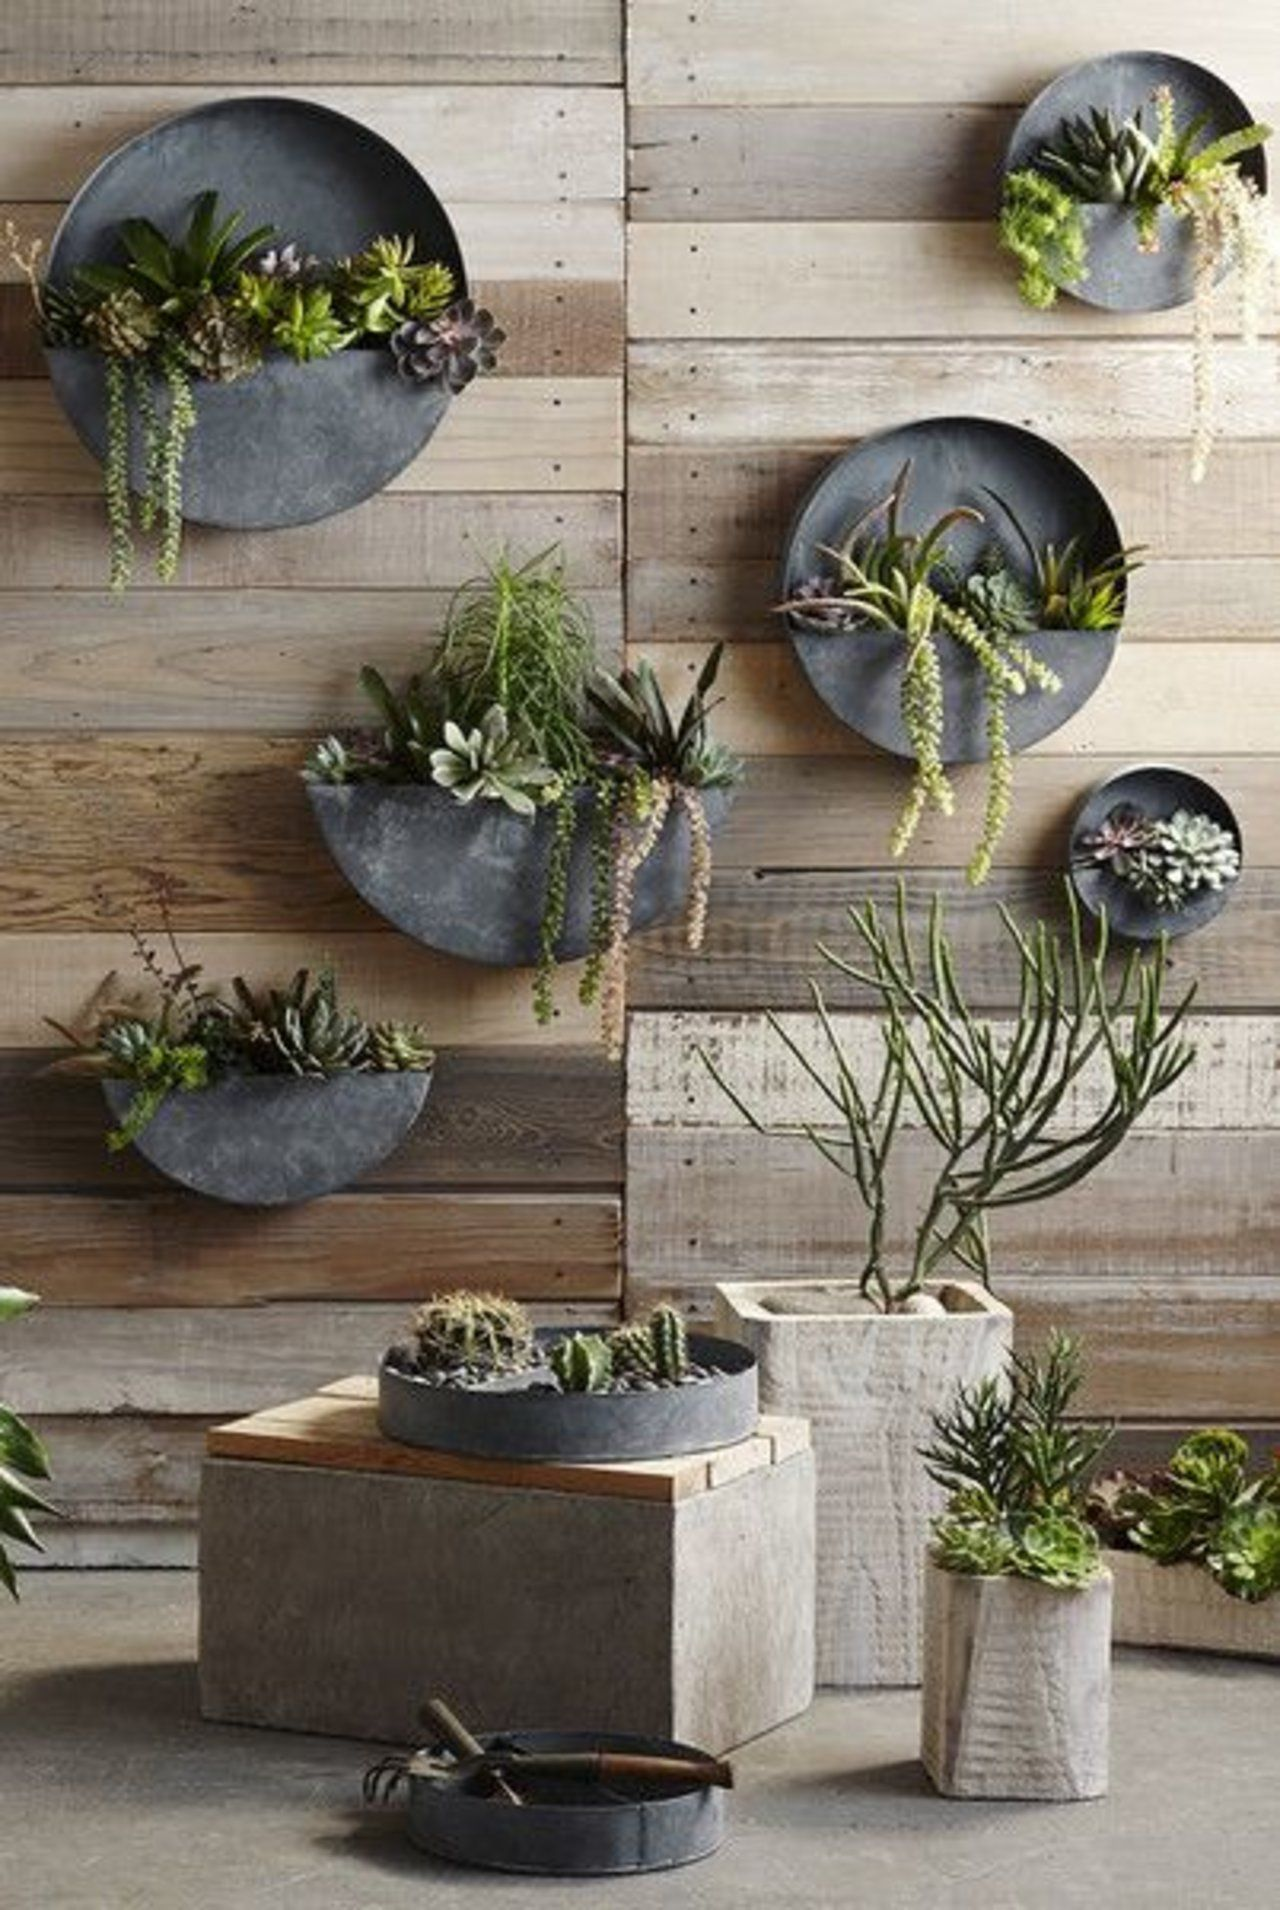 breathe new life into your space with a living wall planten